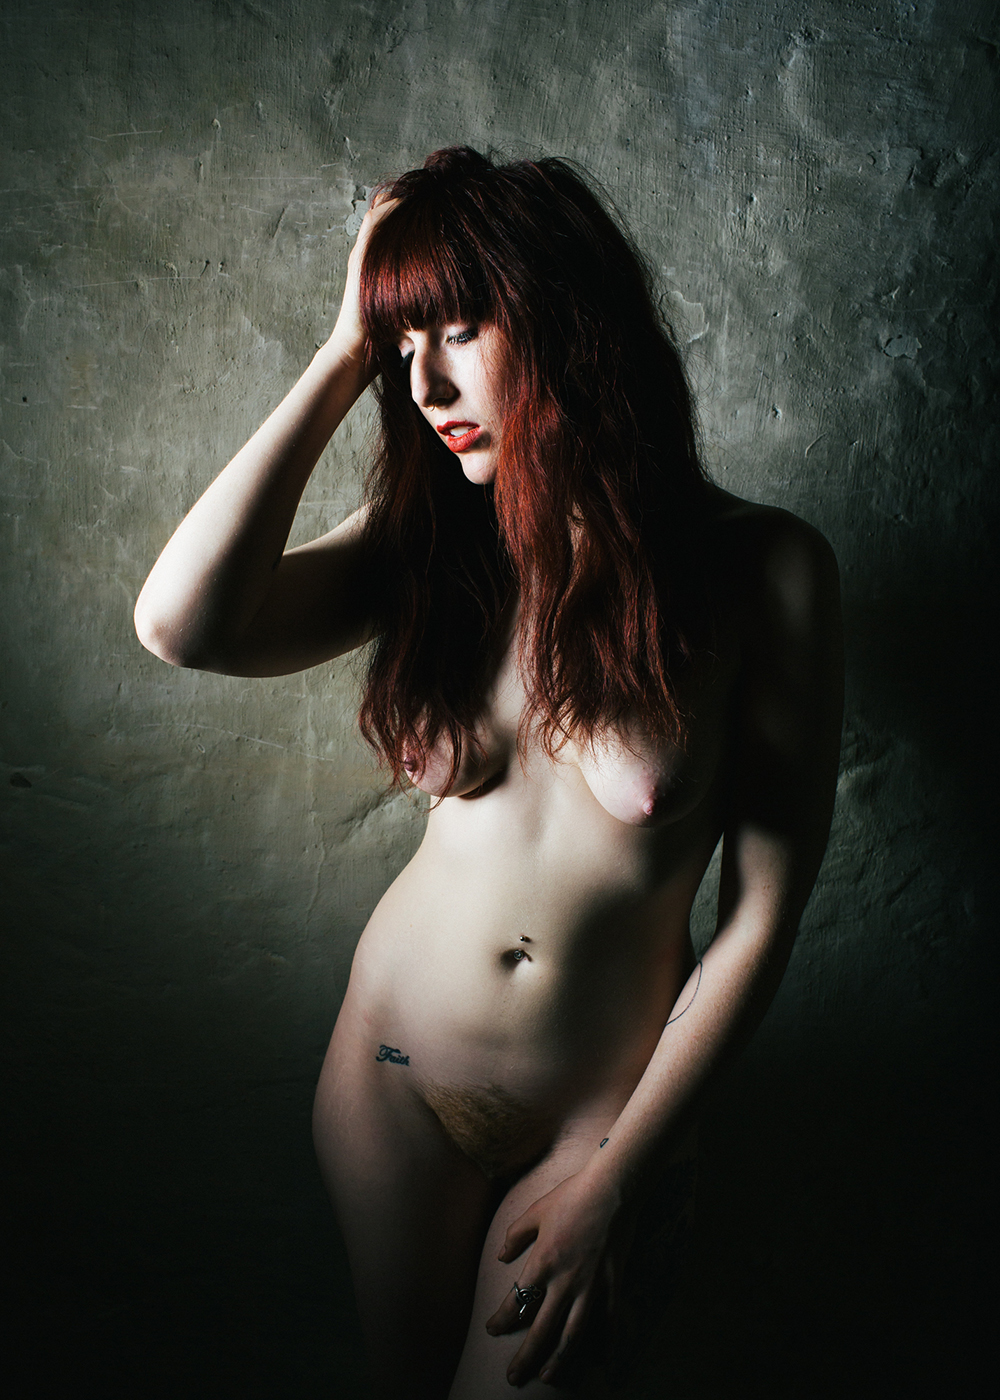 Calgary Nude Art Photography, Figuratif by Boon Ong